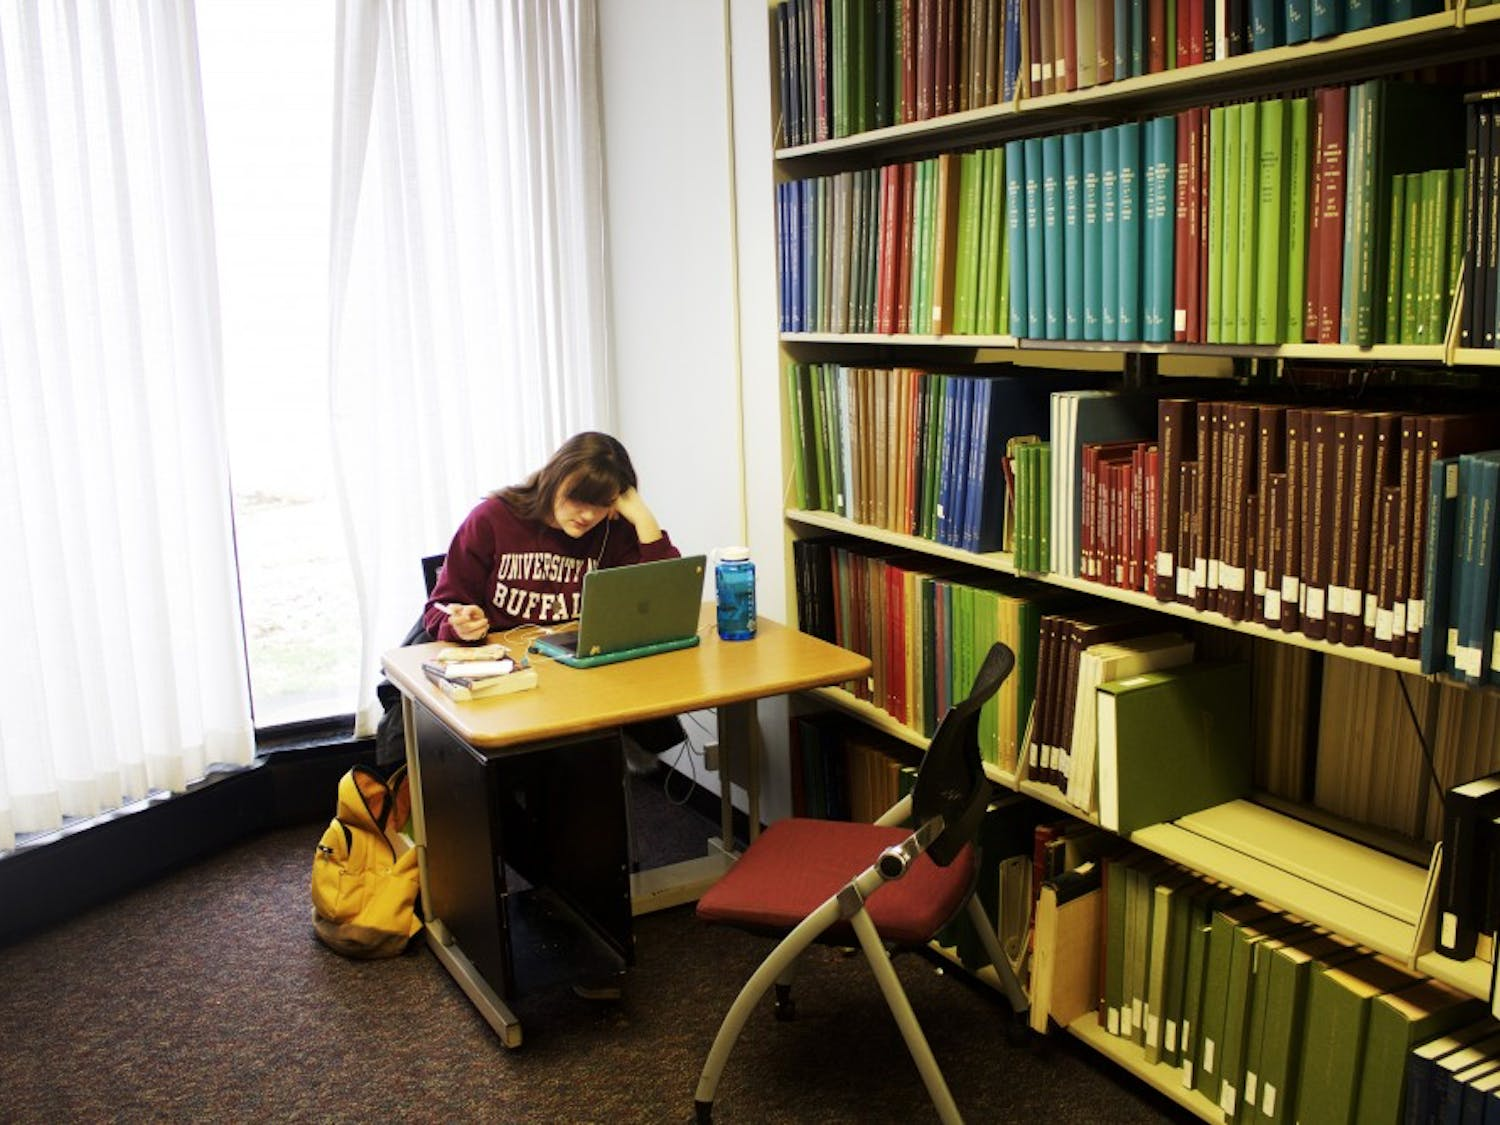 The Music Library is a 51-year-old collection of 224,000 scores, LPs and more located in Baird Hall.